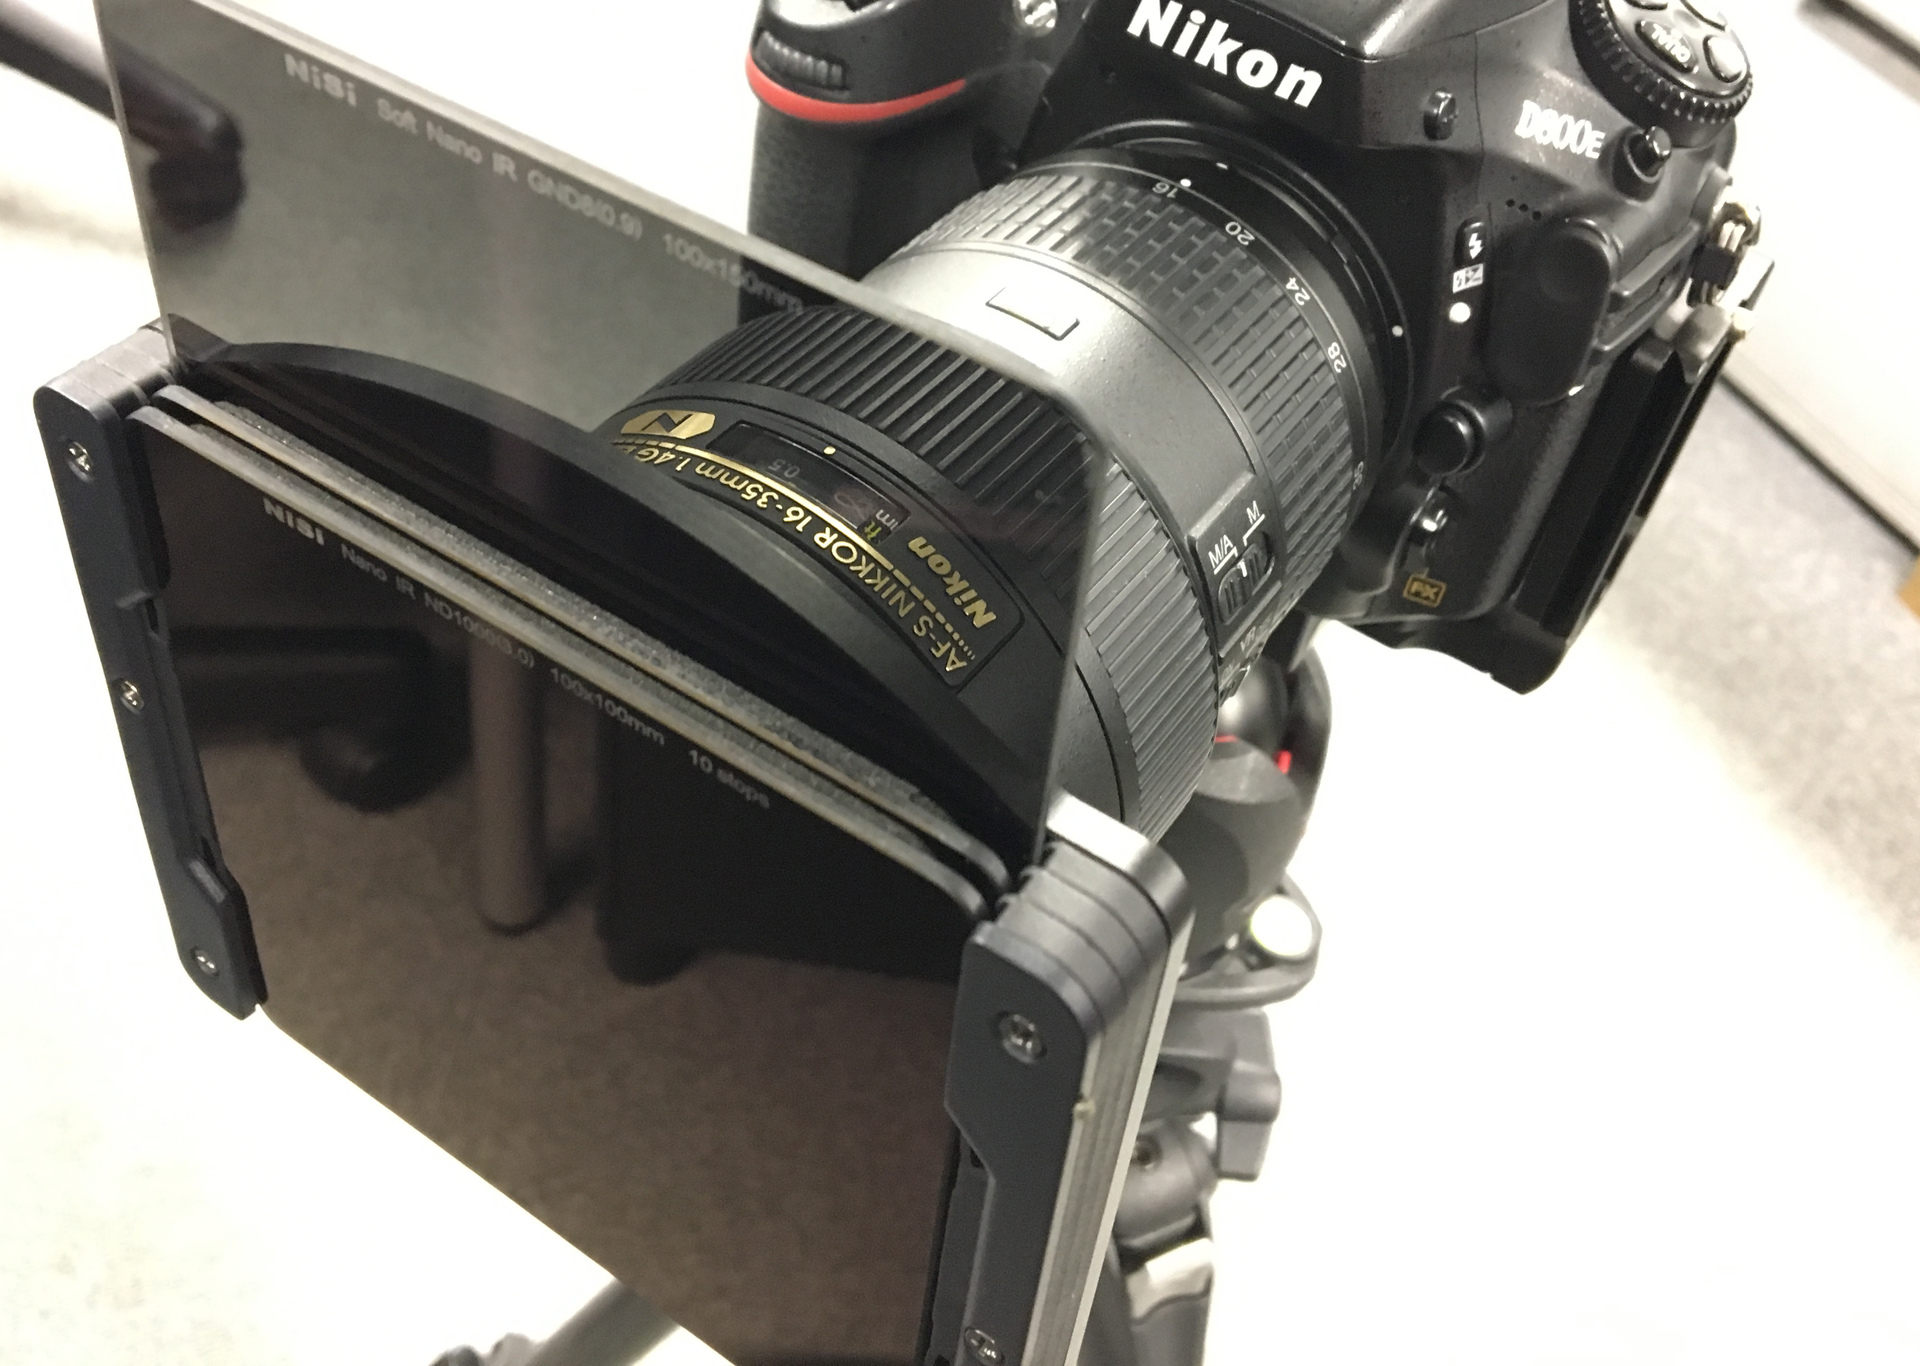 Nisi Filter System Review 100mm V5 Pro Holder Starter Kit All In One Case Ready To Go You Can Then Insert The Filters Need Up A Maximum Of Three Plus Polariser Not Bad At If Consider Theres No Vignetting